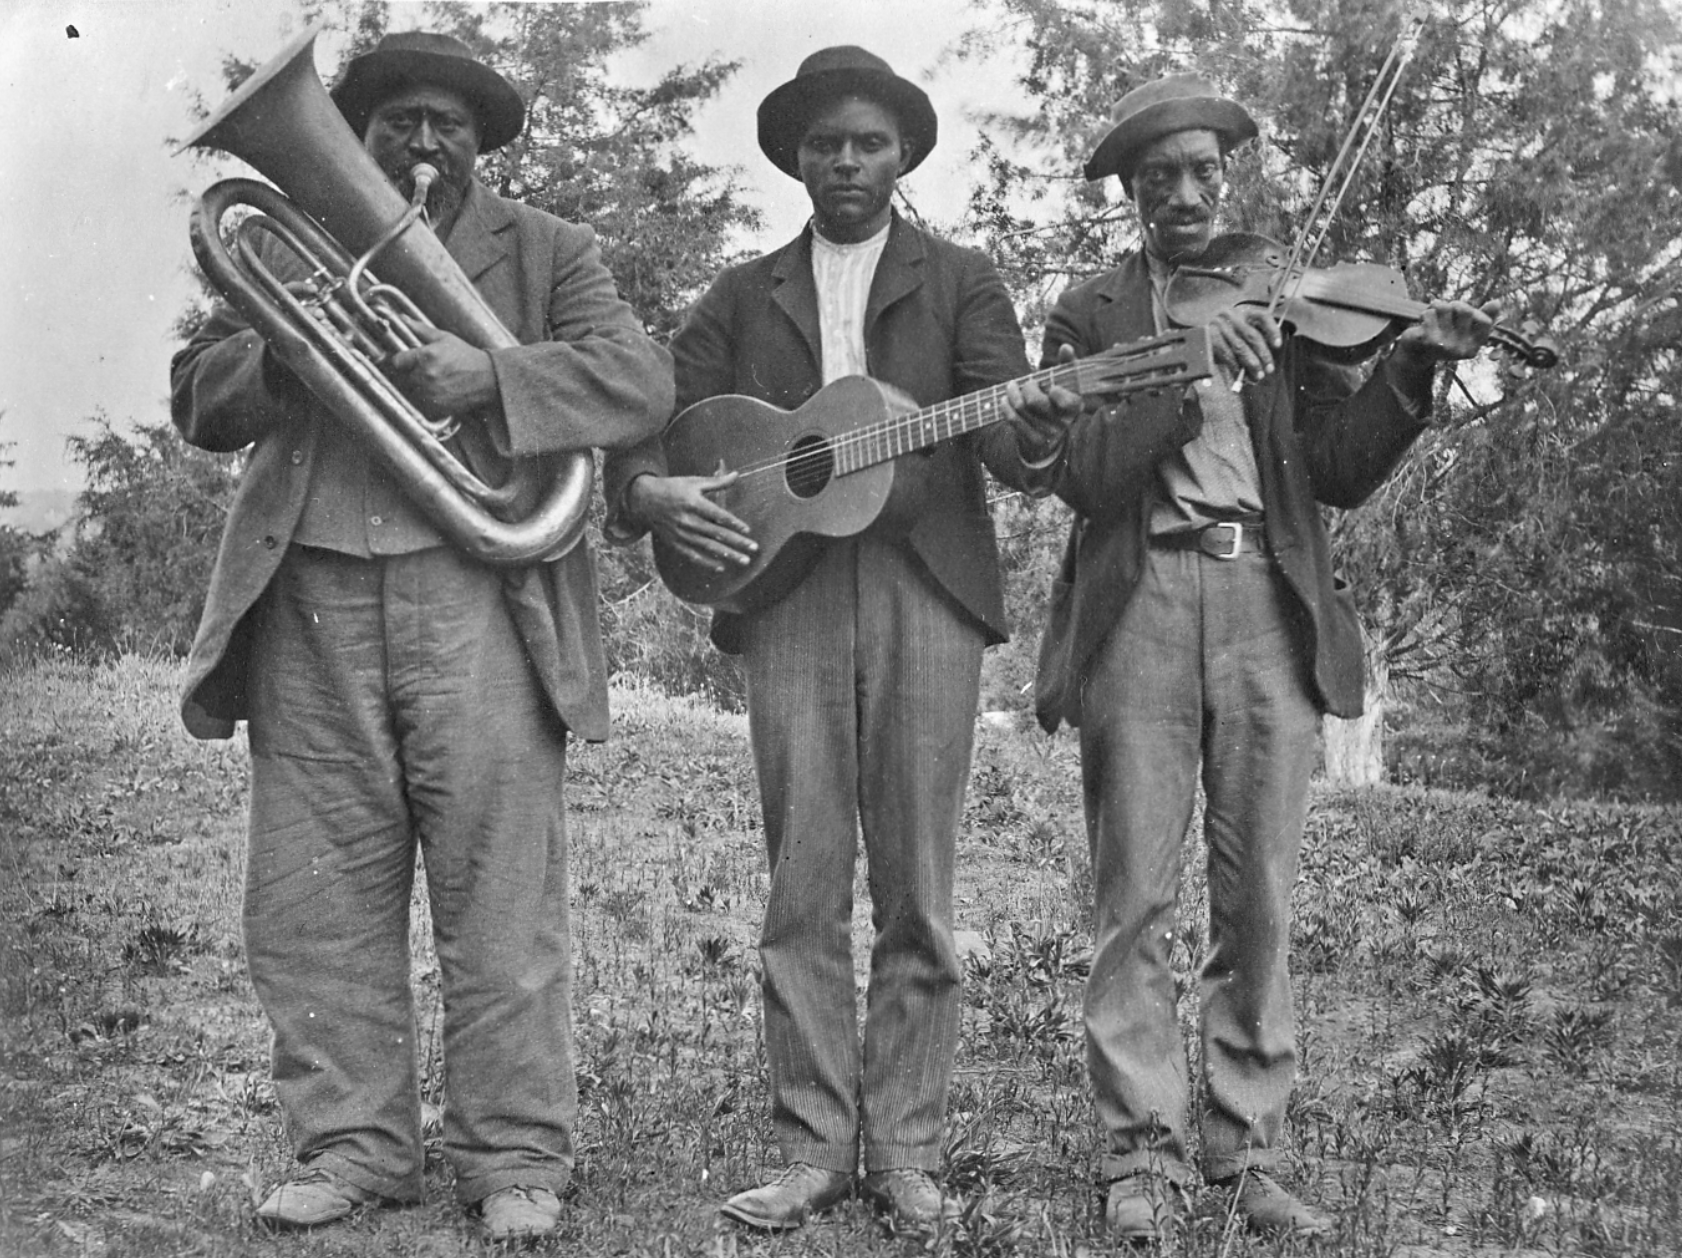 Three African American men are standing holding instruments - a tuba, guitar, and fiddle with a bow.